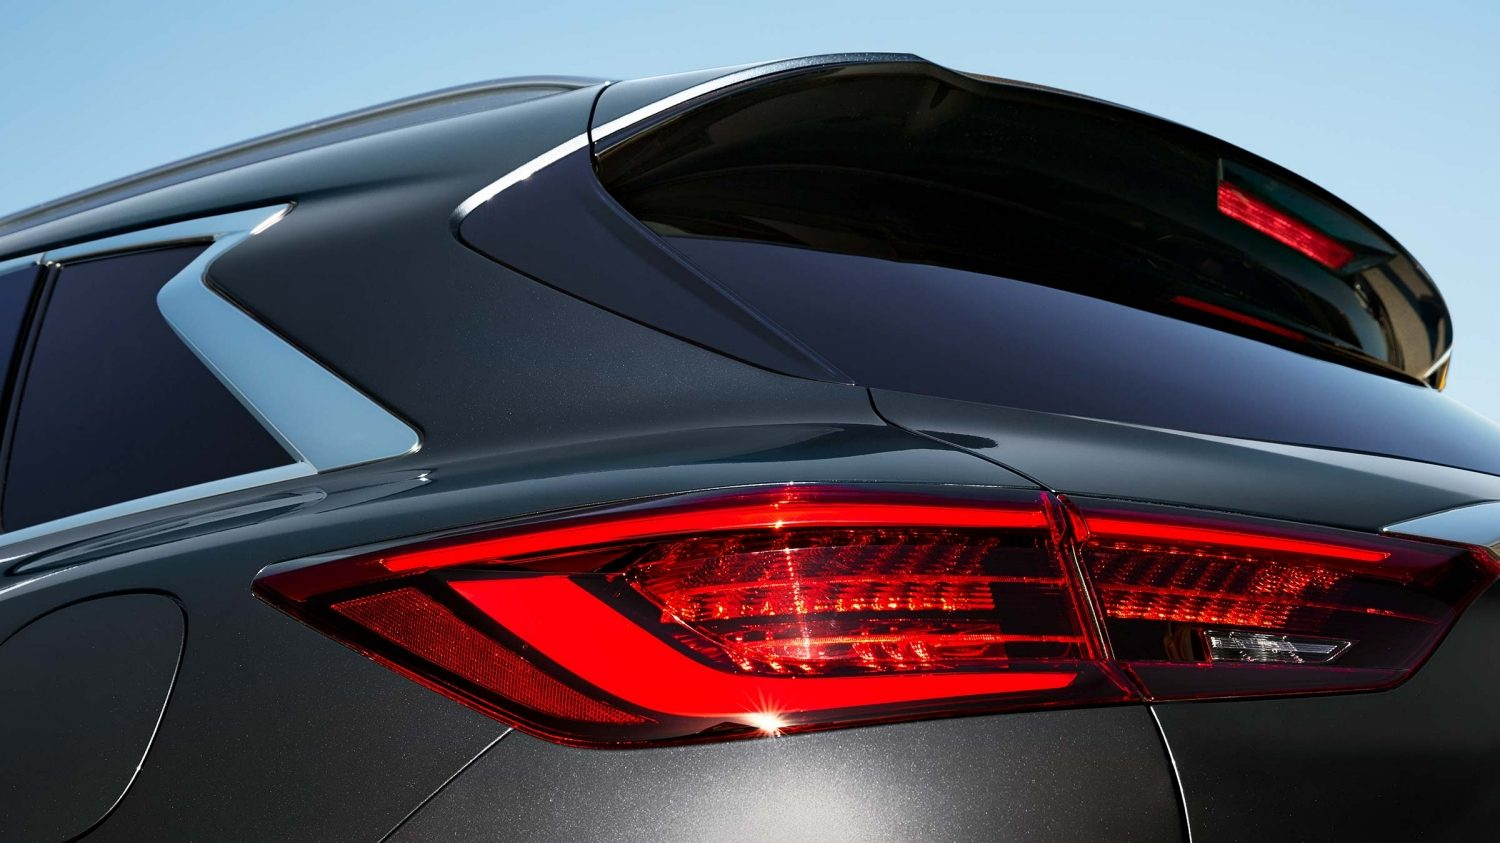 2019 INFINITI QX50 Luxury Crossover LED Taillights